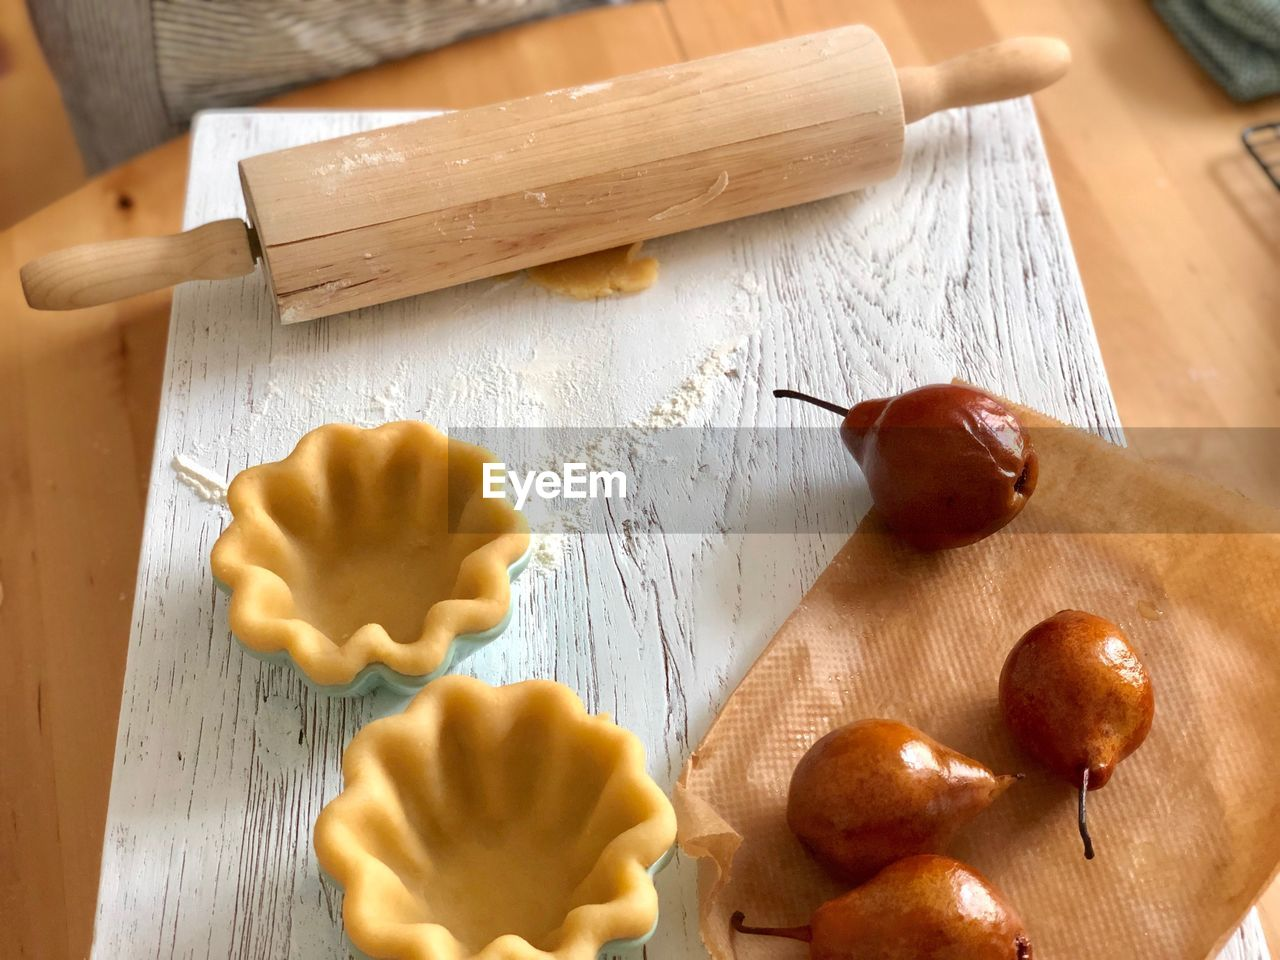 food, freshness, food and drink, table, wood - material, indoors, high angle view, preparation, close-up, still life, cutting board, kitchen utensil, rolling pin, no people, sweet food, preparing food, selective focus, dough, dairy product, healthy eating